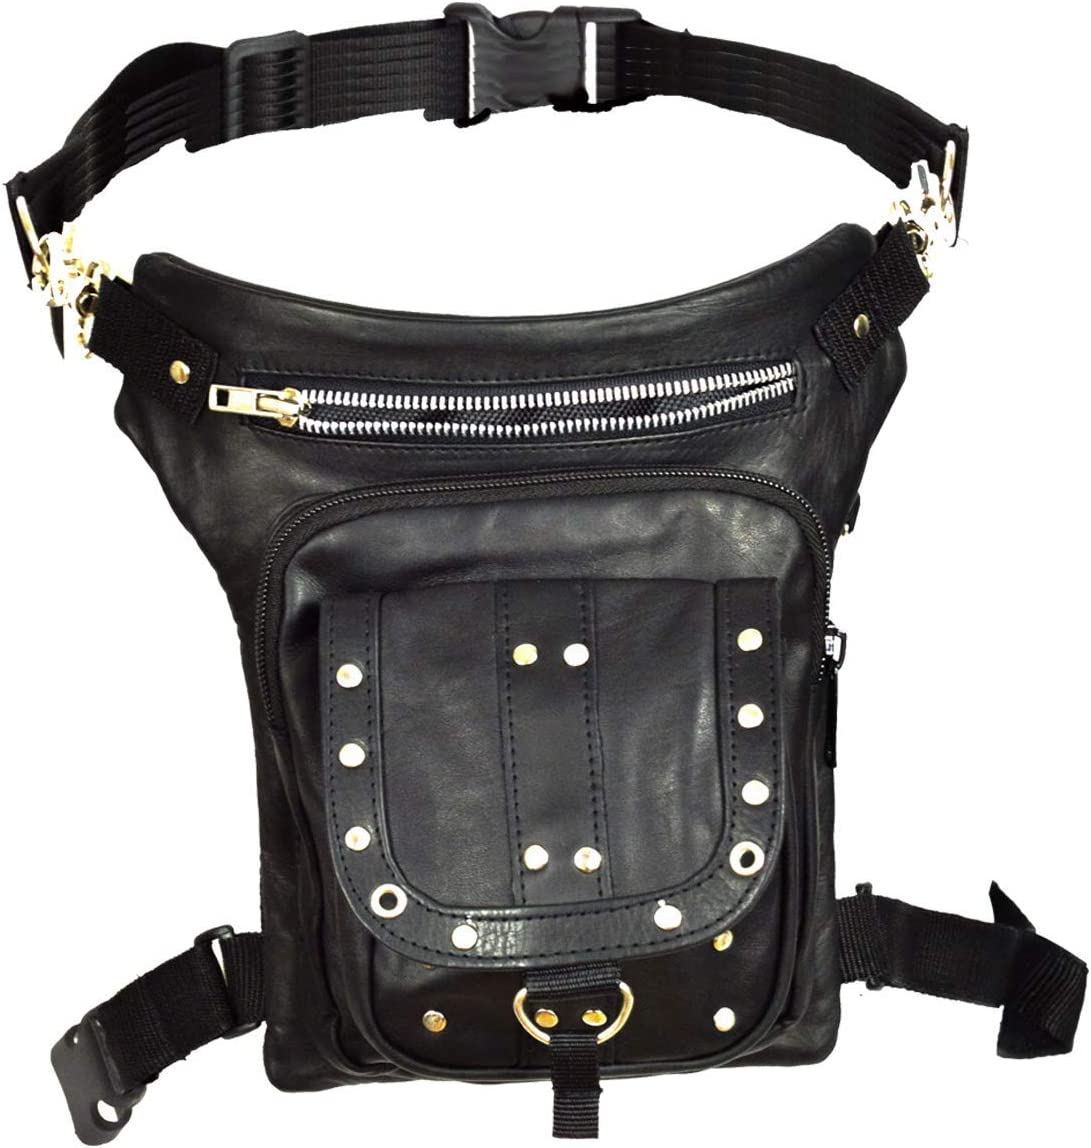 real leather purse motorcycle purse riding bag Thigh purse real leather bag riding purse full grain leather thigh bag thigh bag